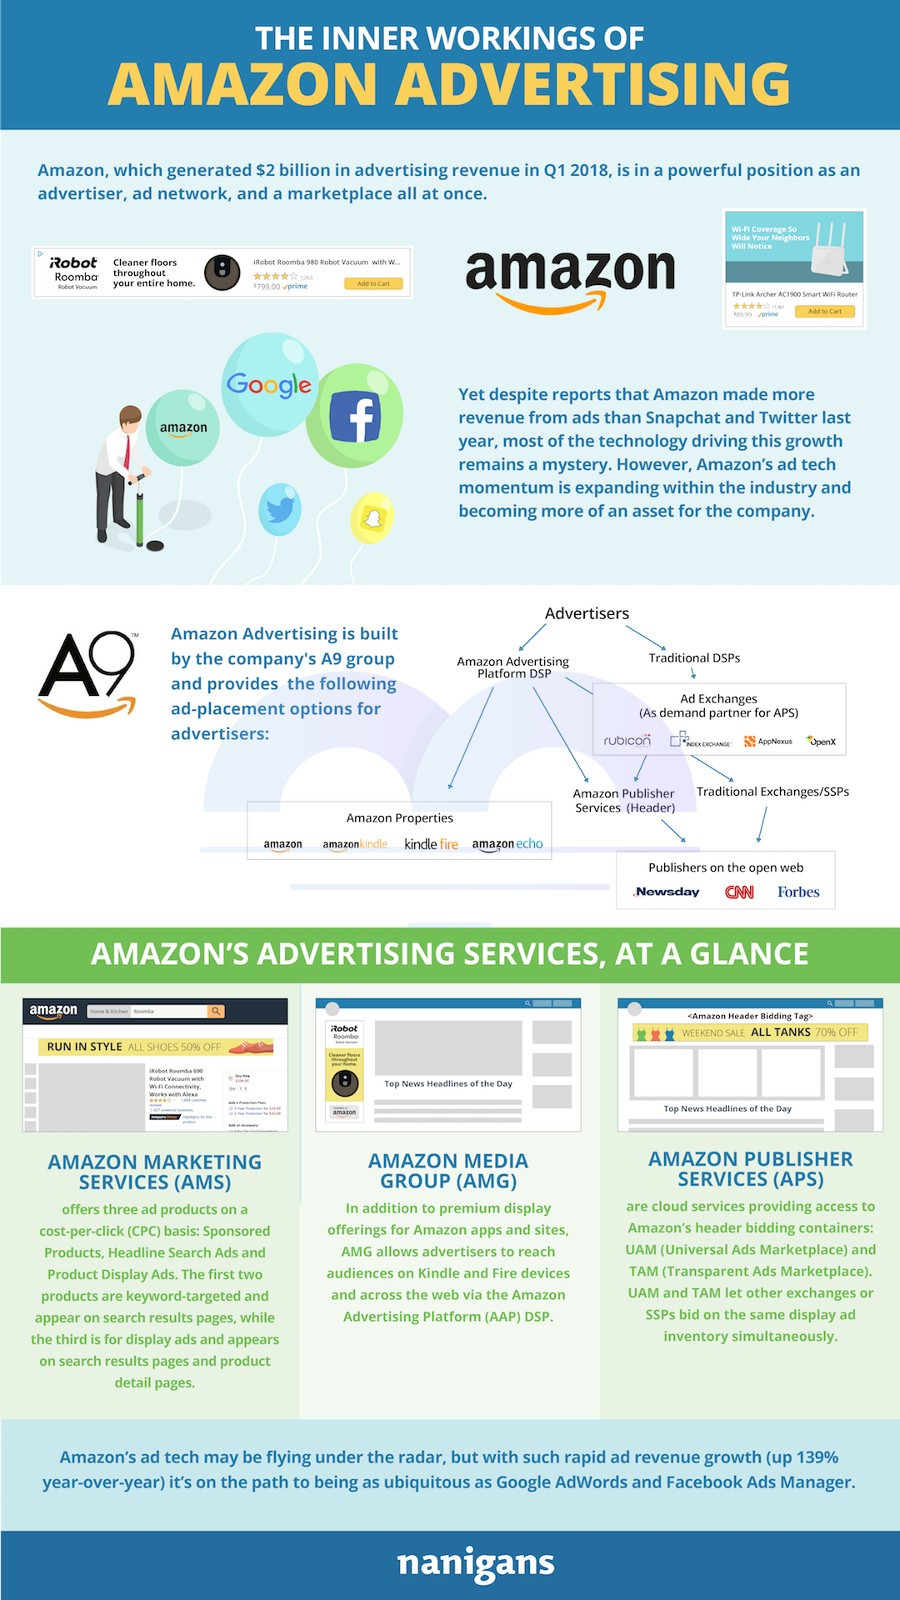 https://sherpa2017.blob.core.windows.net/images/contenthub-posts/07-2018/Aug-23---AdAmazon---Infographic.jpg